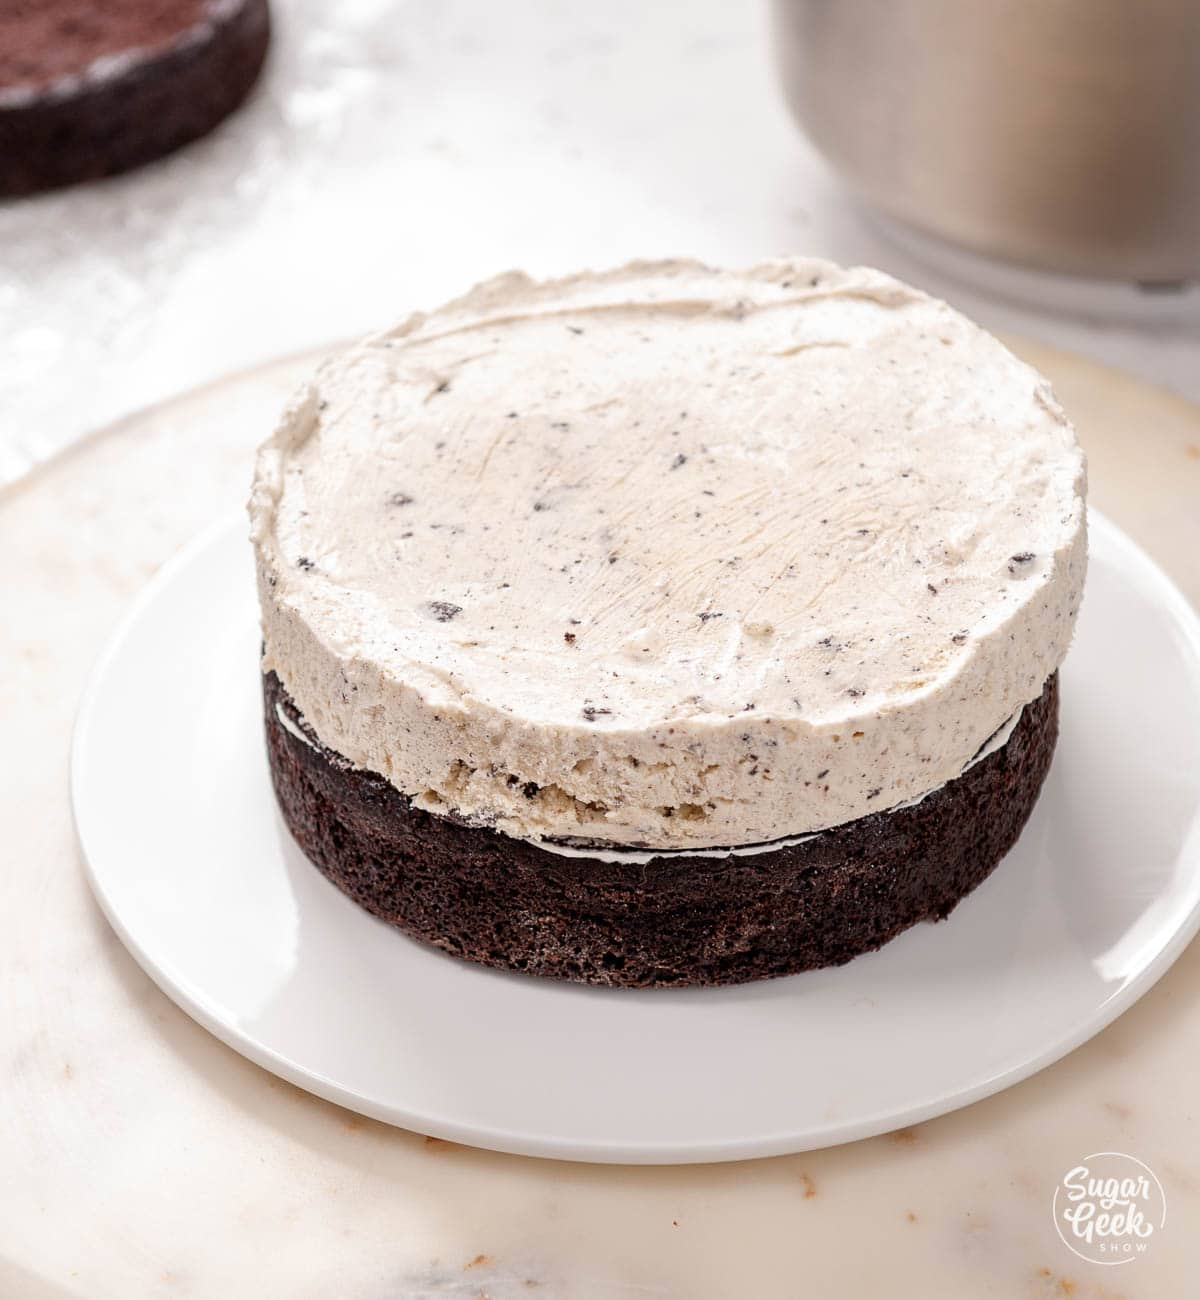 chocolate cake and ice cream layer on a white plate